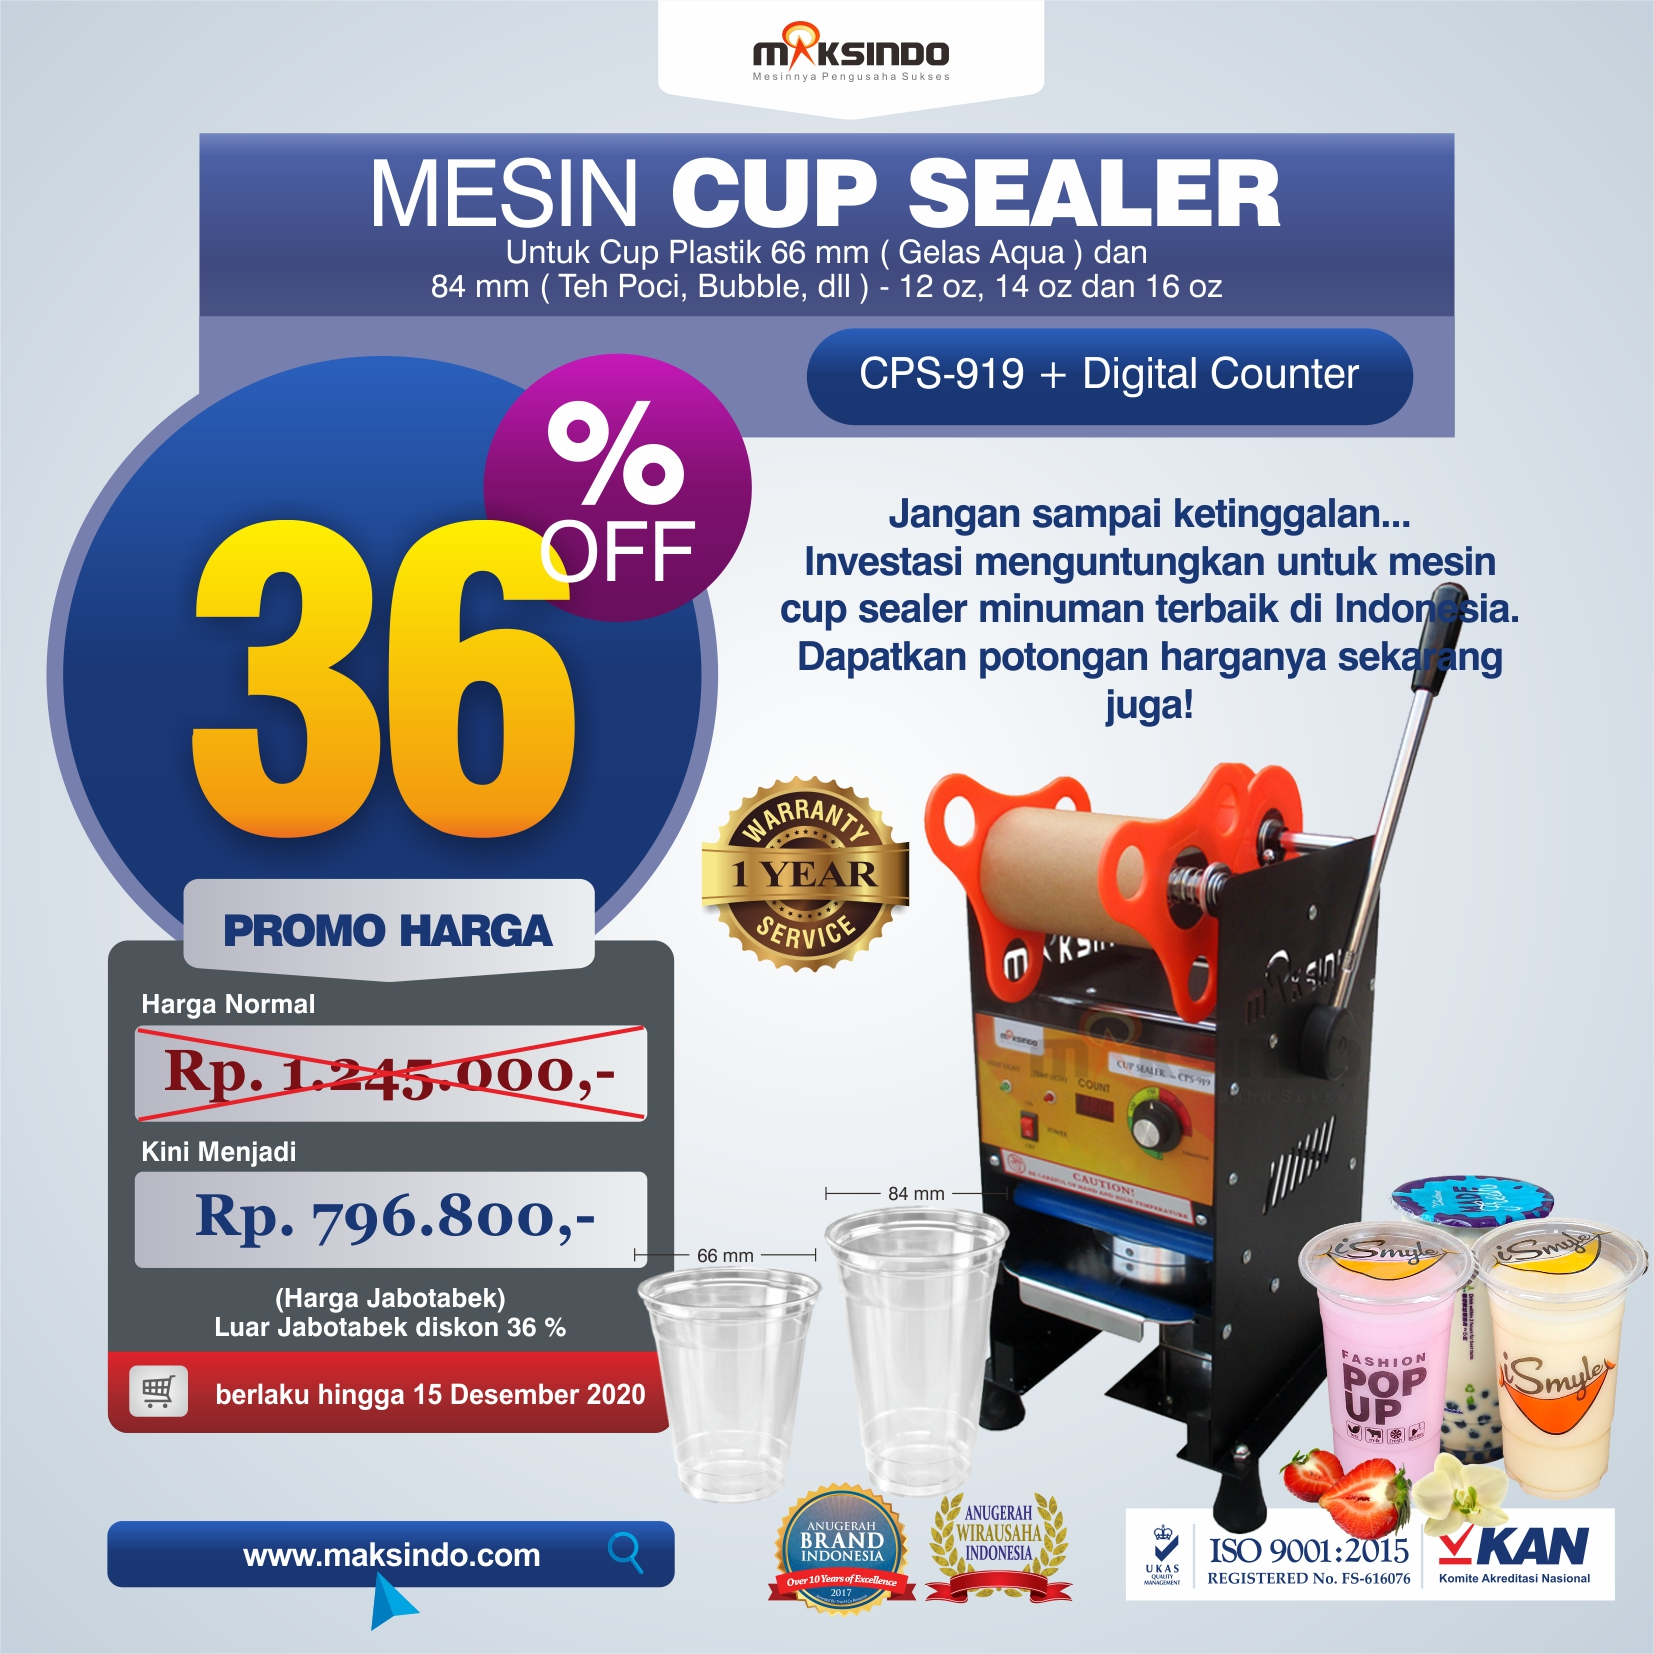 Jual Mesin Cup Sealer Manual CPS-919 di Solo